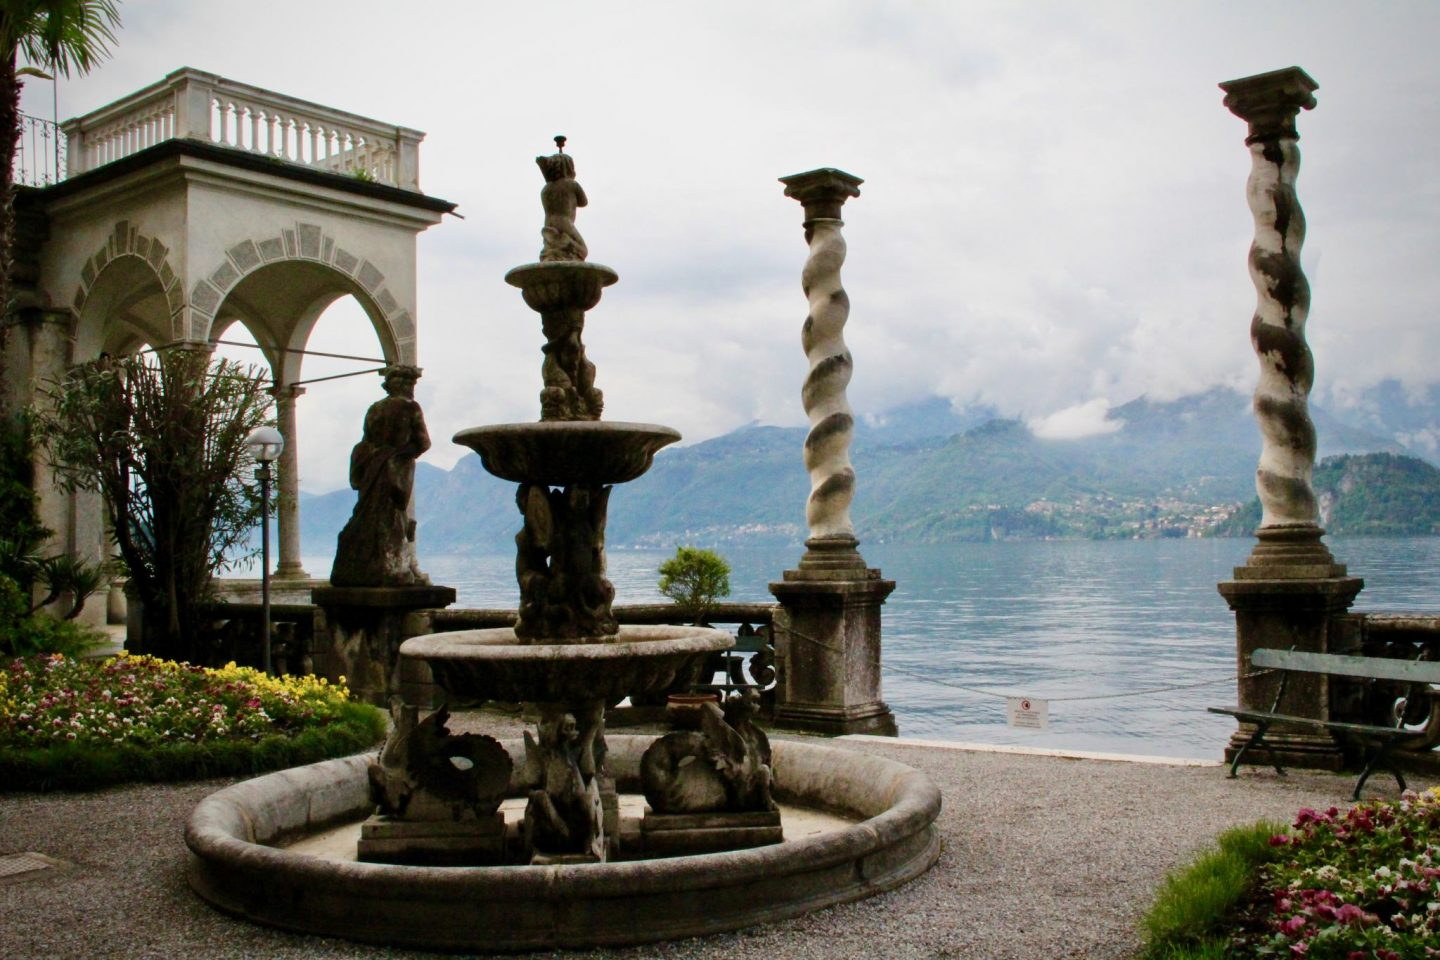 What to do Lake Como ... Villa Monastero Pillars Verenna, Lake Como ... The Spectacular Adventurer